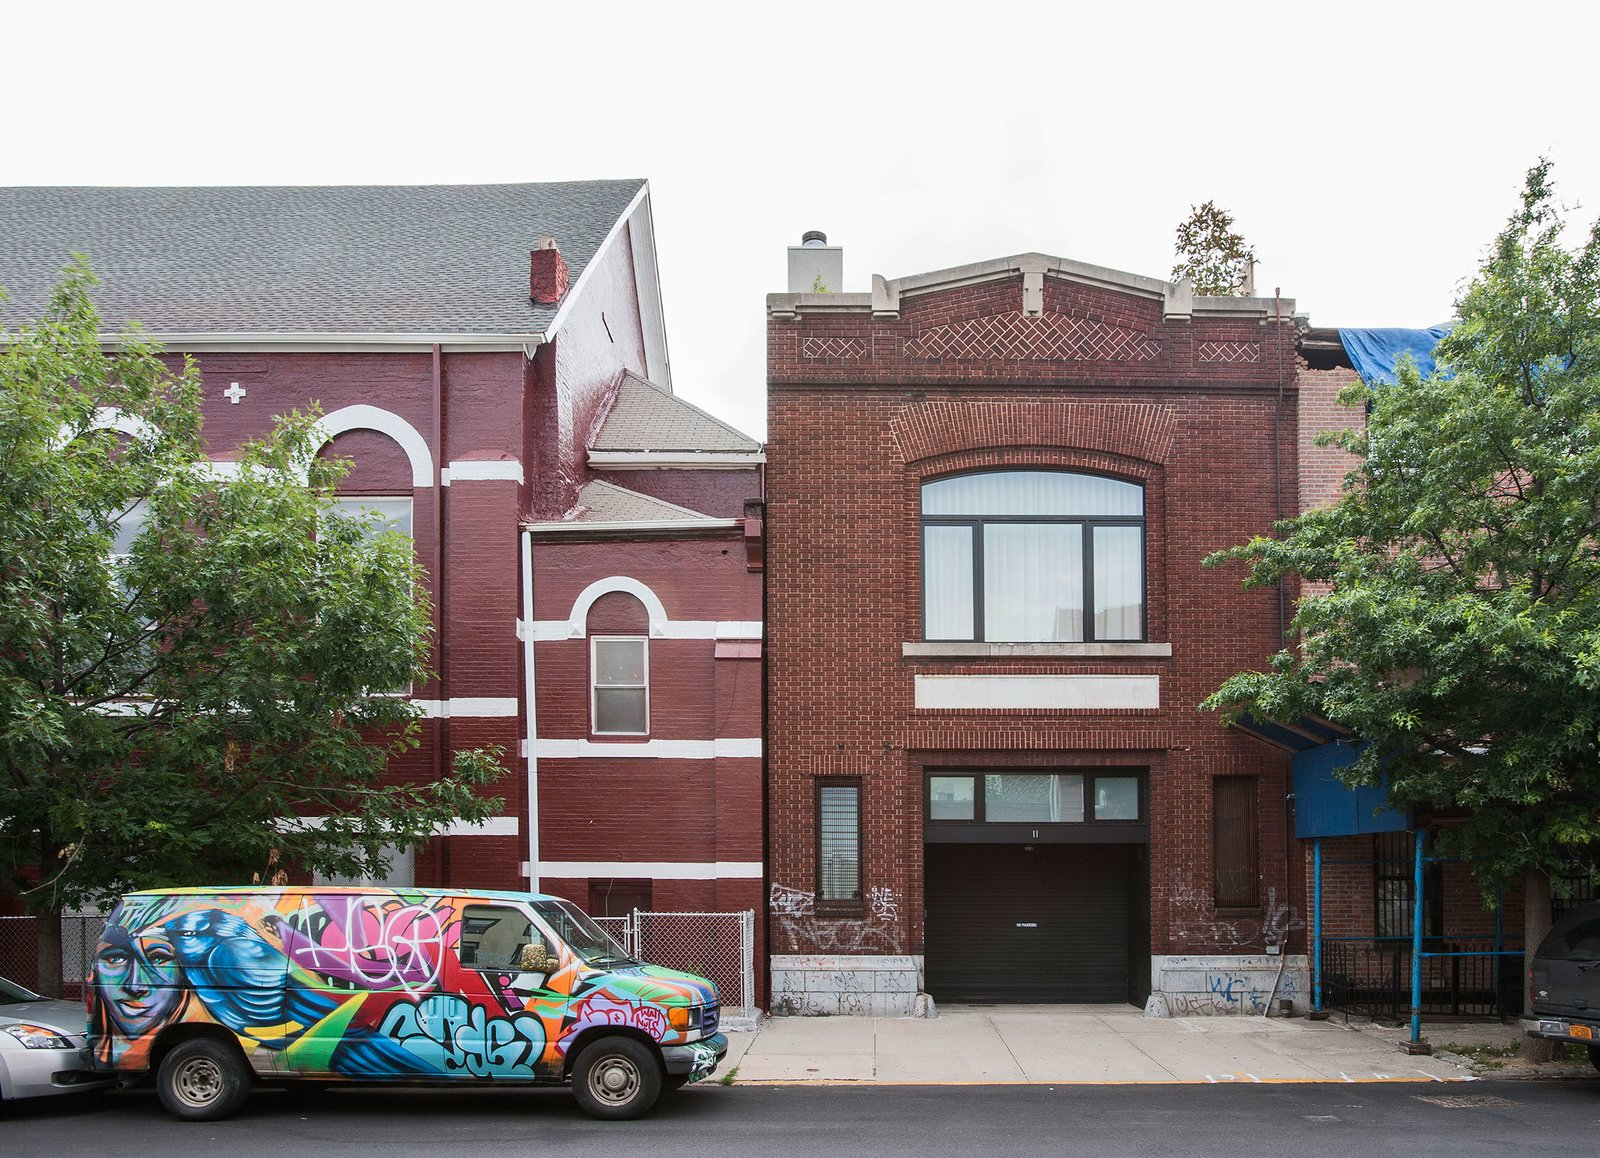 Photo 1 of 9 in A 19th Century Firehouse Becomes a Three-Story Modern Home